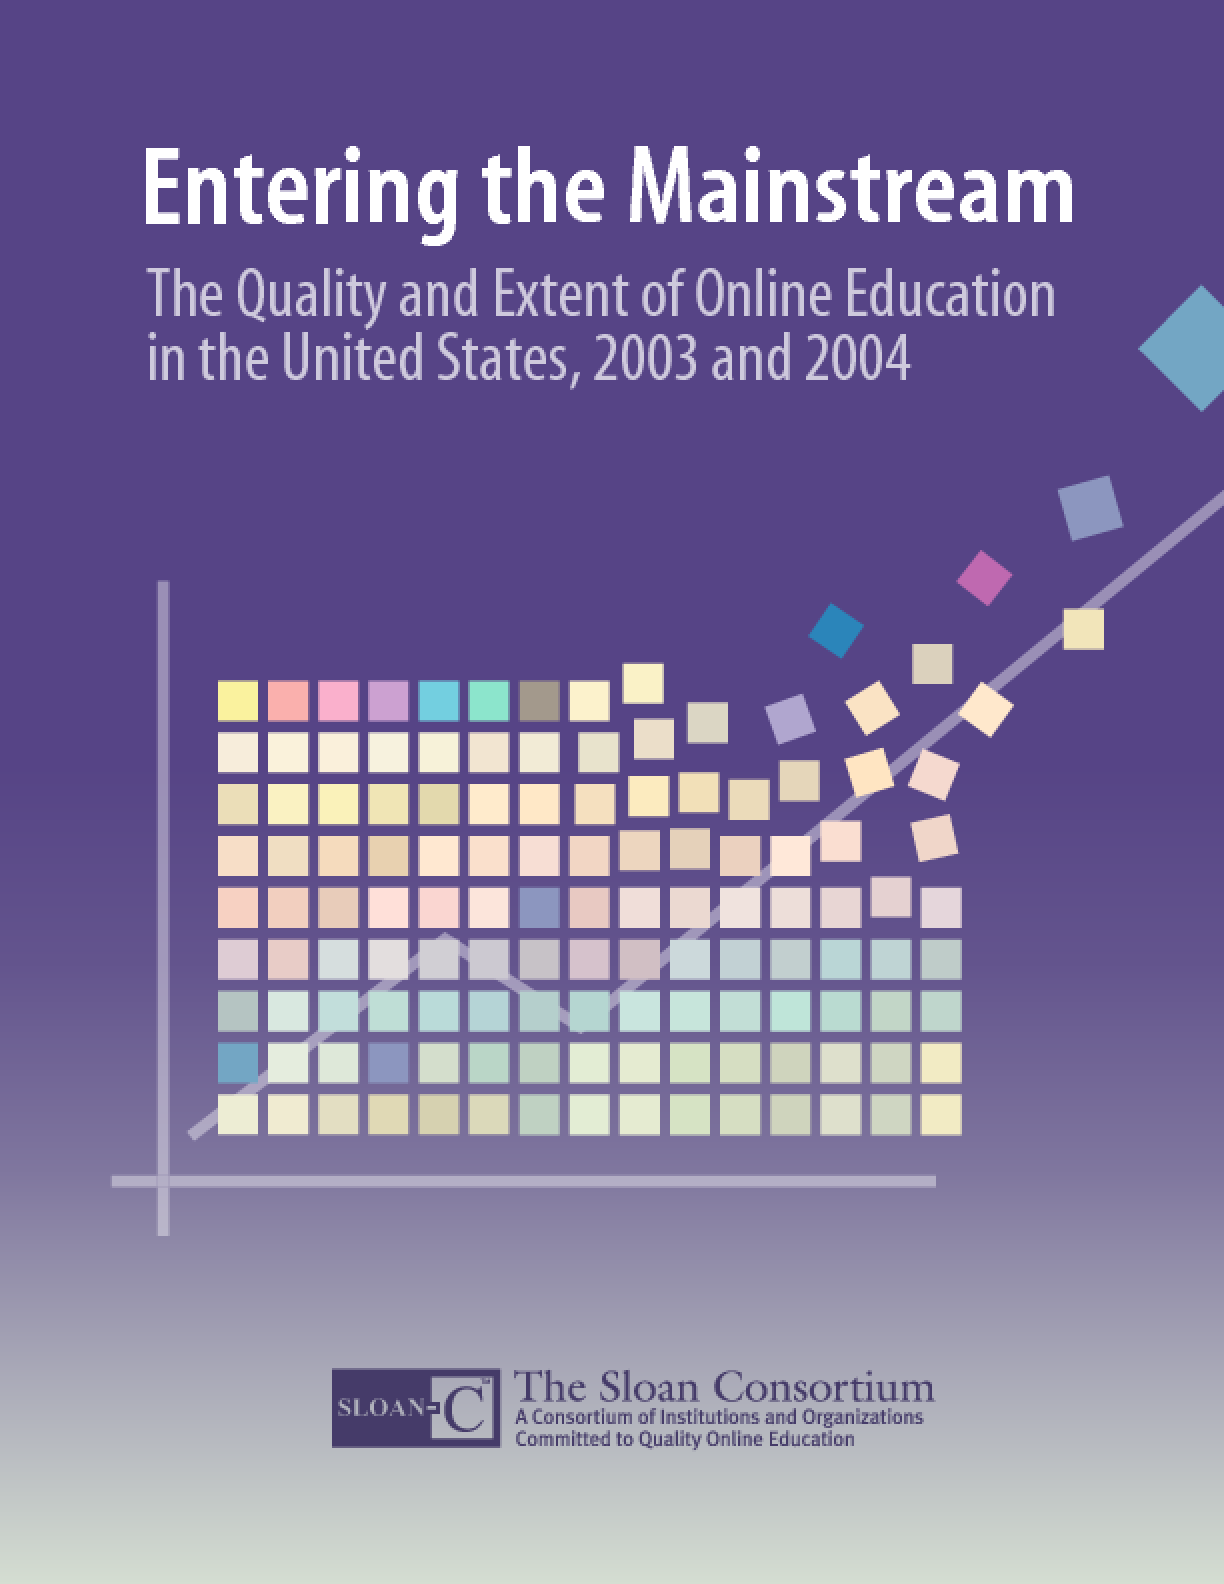 Entering the Mainstream: The Quality and Extent of Online Education in the United States, 2003 and 2004